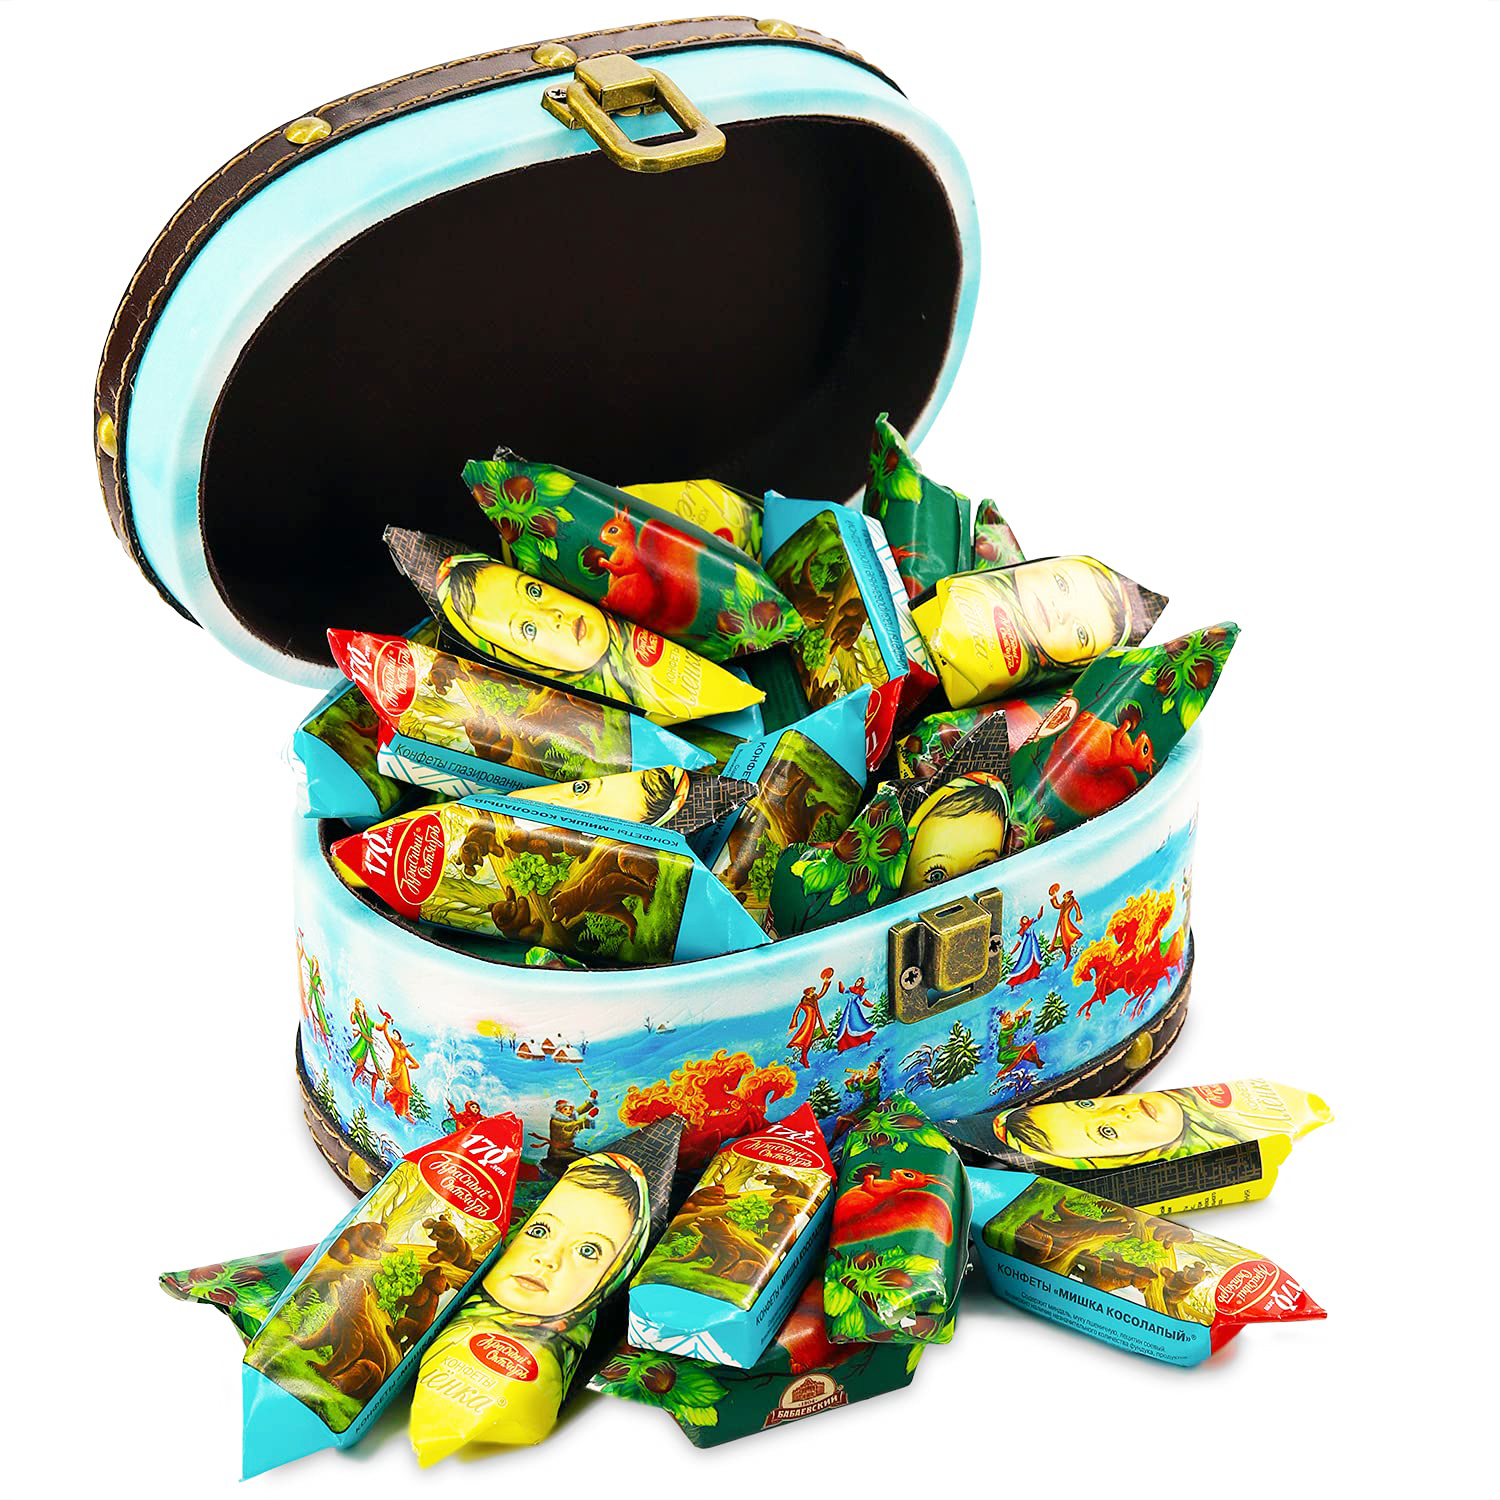 Exclusive Sweet Gift (Only Chocolate Candy Inside) Troika, Wood+Leather, 450 g/ 1 lb